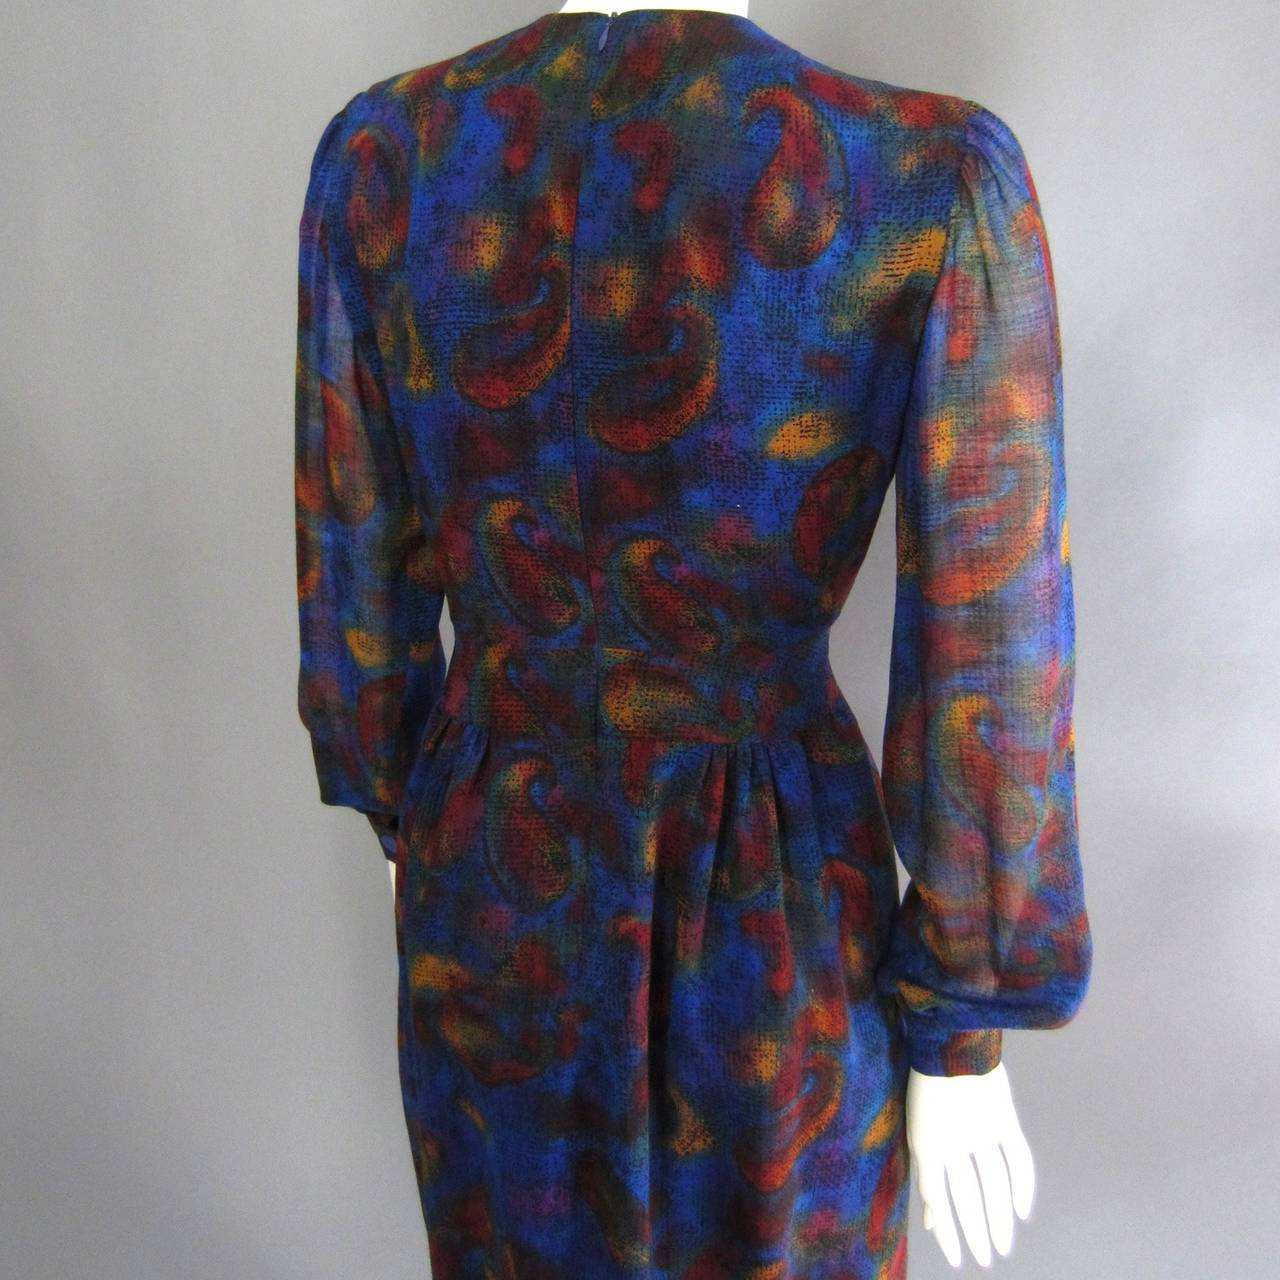 Women's PAULINE TRIGERE Paisley Print Cocktail Dress For Sale